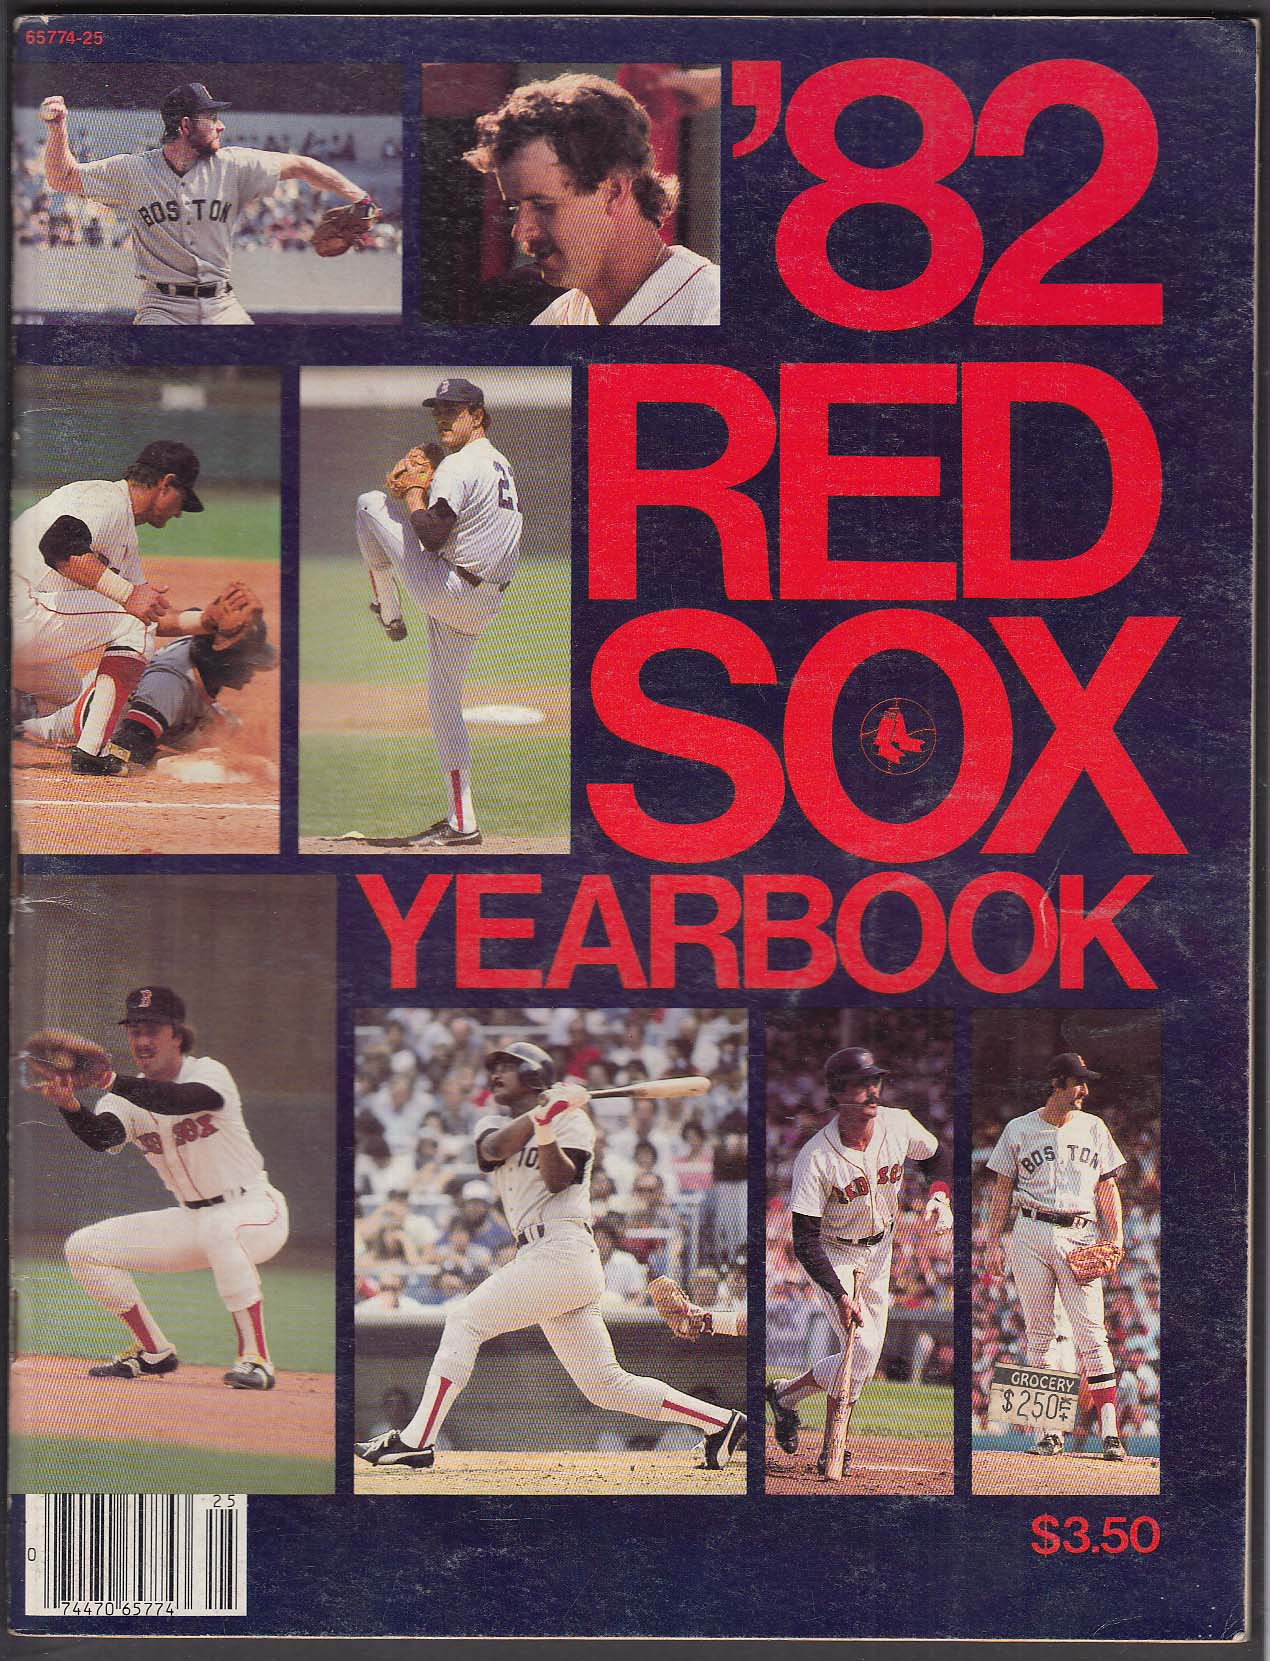 1982 Boston Red Sox Yearbook: Fenway Park Dwight Evans ++